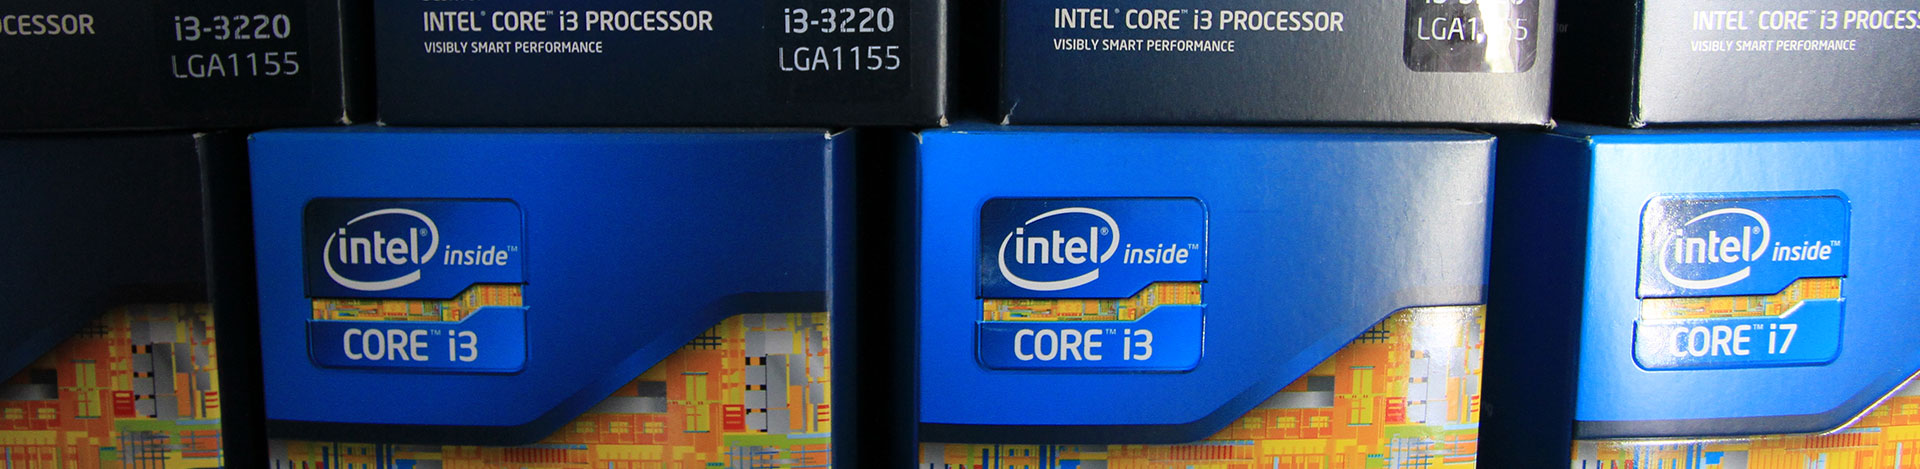 Krachtige Intel processoren